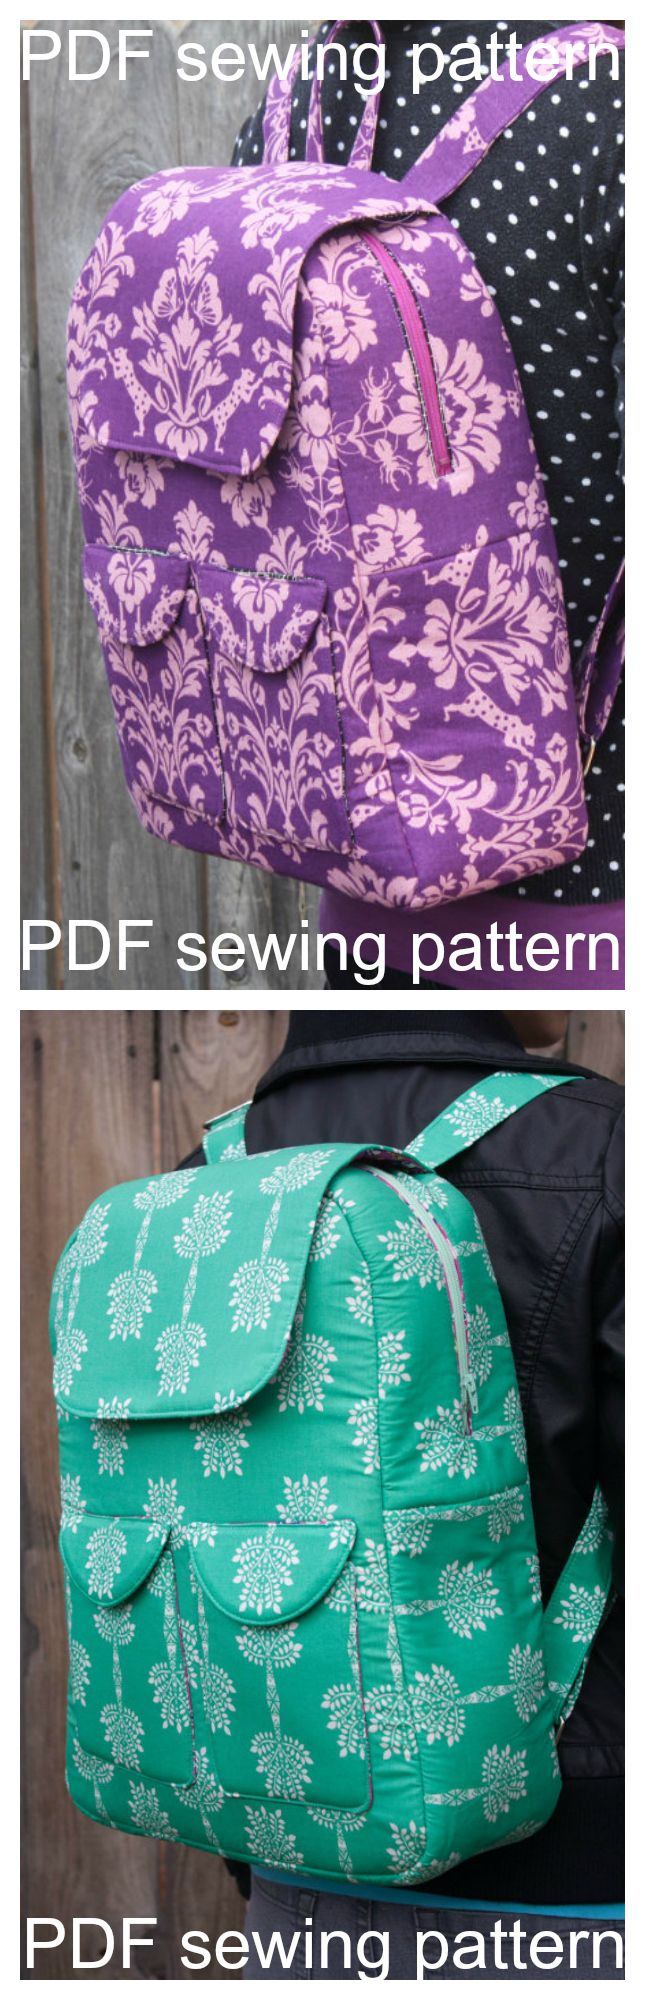 Here's the pdf sewing pattern for the Edelweiss Backpack. This fabulous bag can be made as either a backpack or a cross-body bag! There are pretty flap pockets on the front, as well as both a zip closure and flap at the top of the bag. With an inner zipper pocket, you'll have lots of places to store the essentials that you need to keep within easy reach!